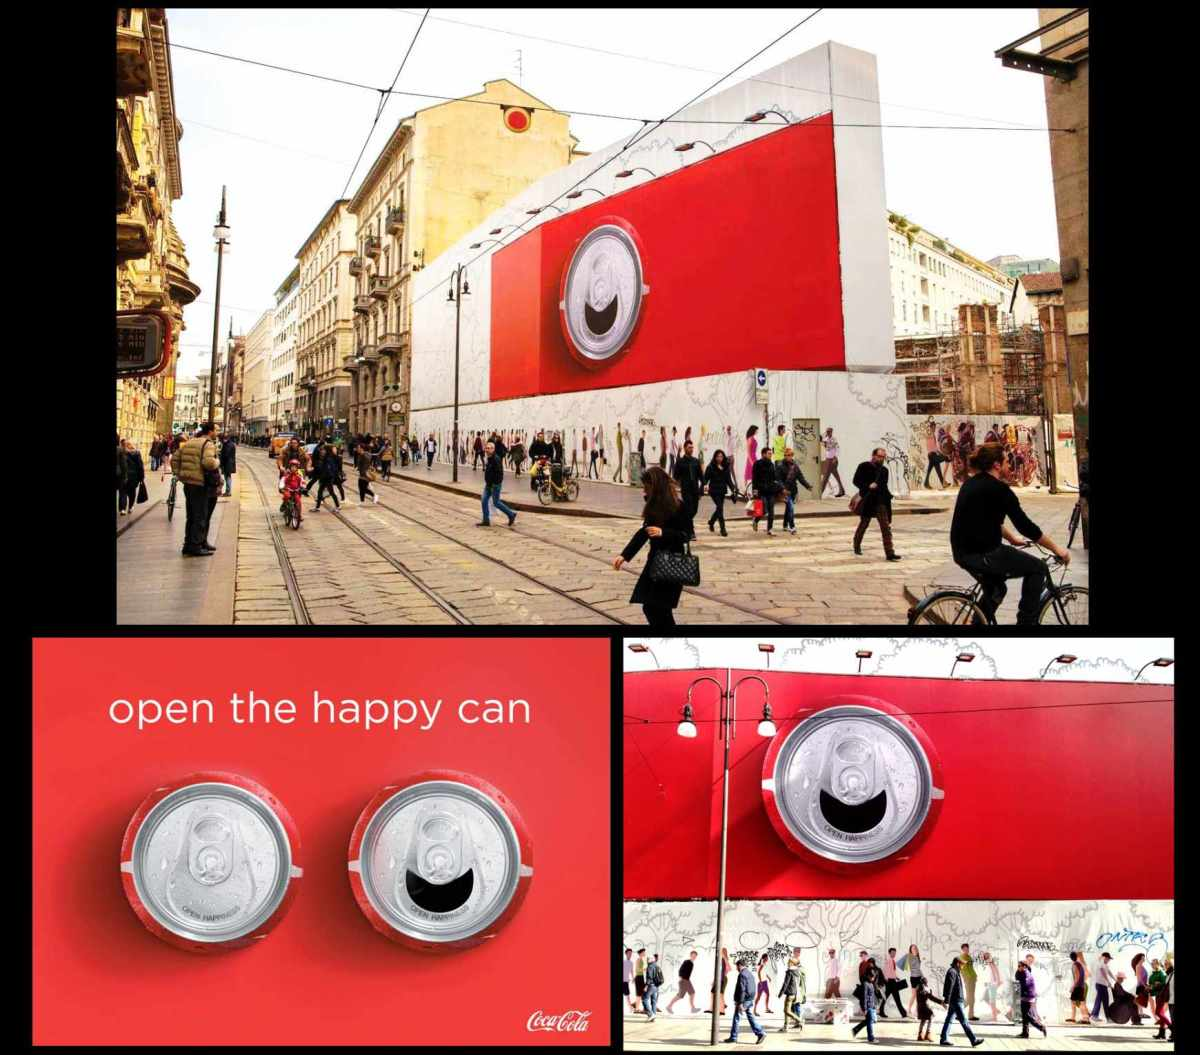 coca-cola_happy_can_via_torino